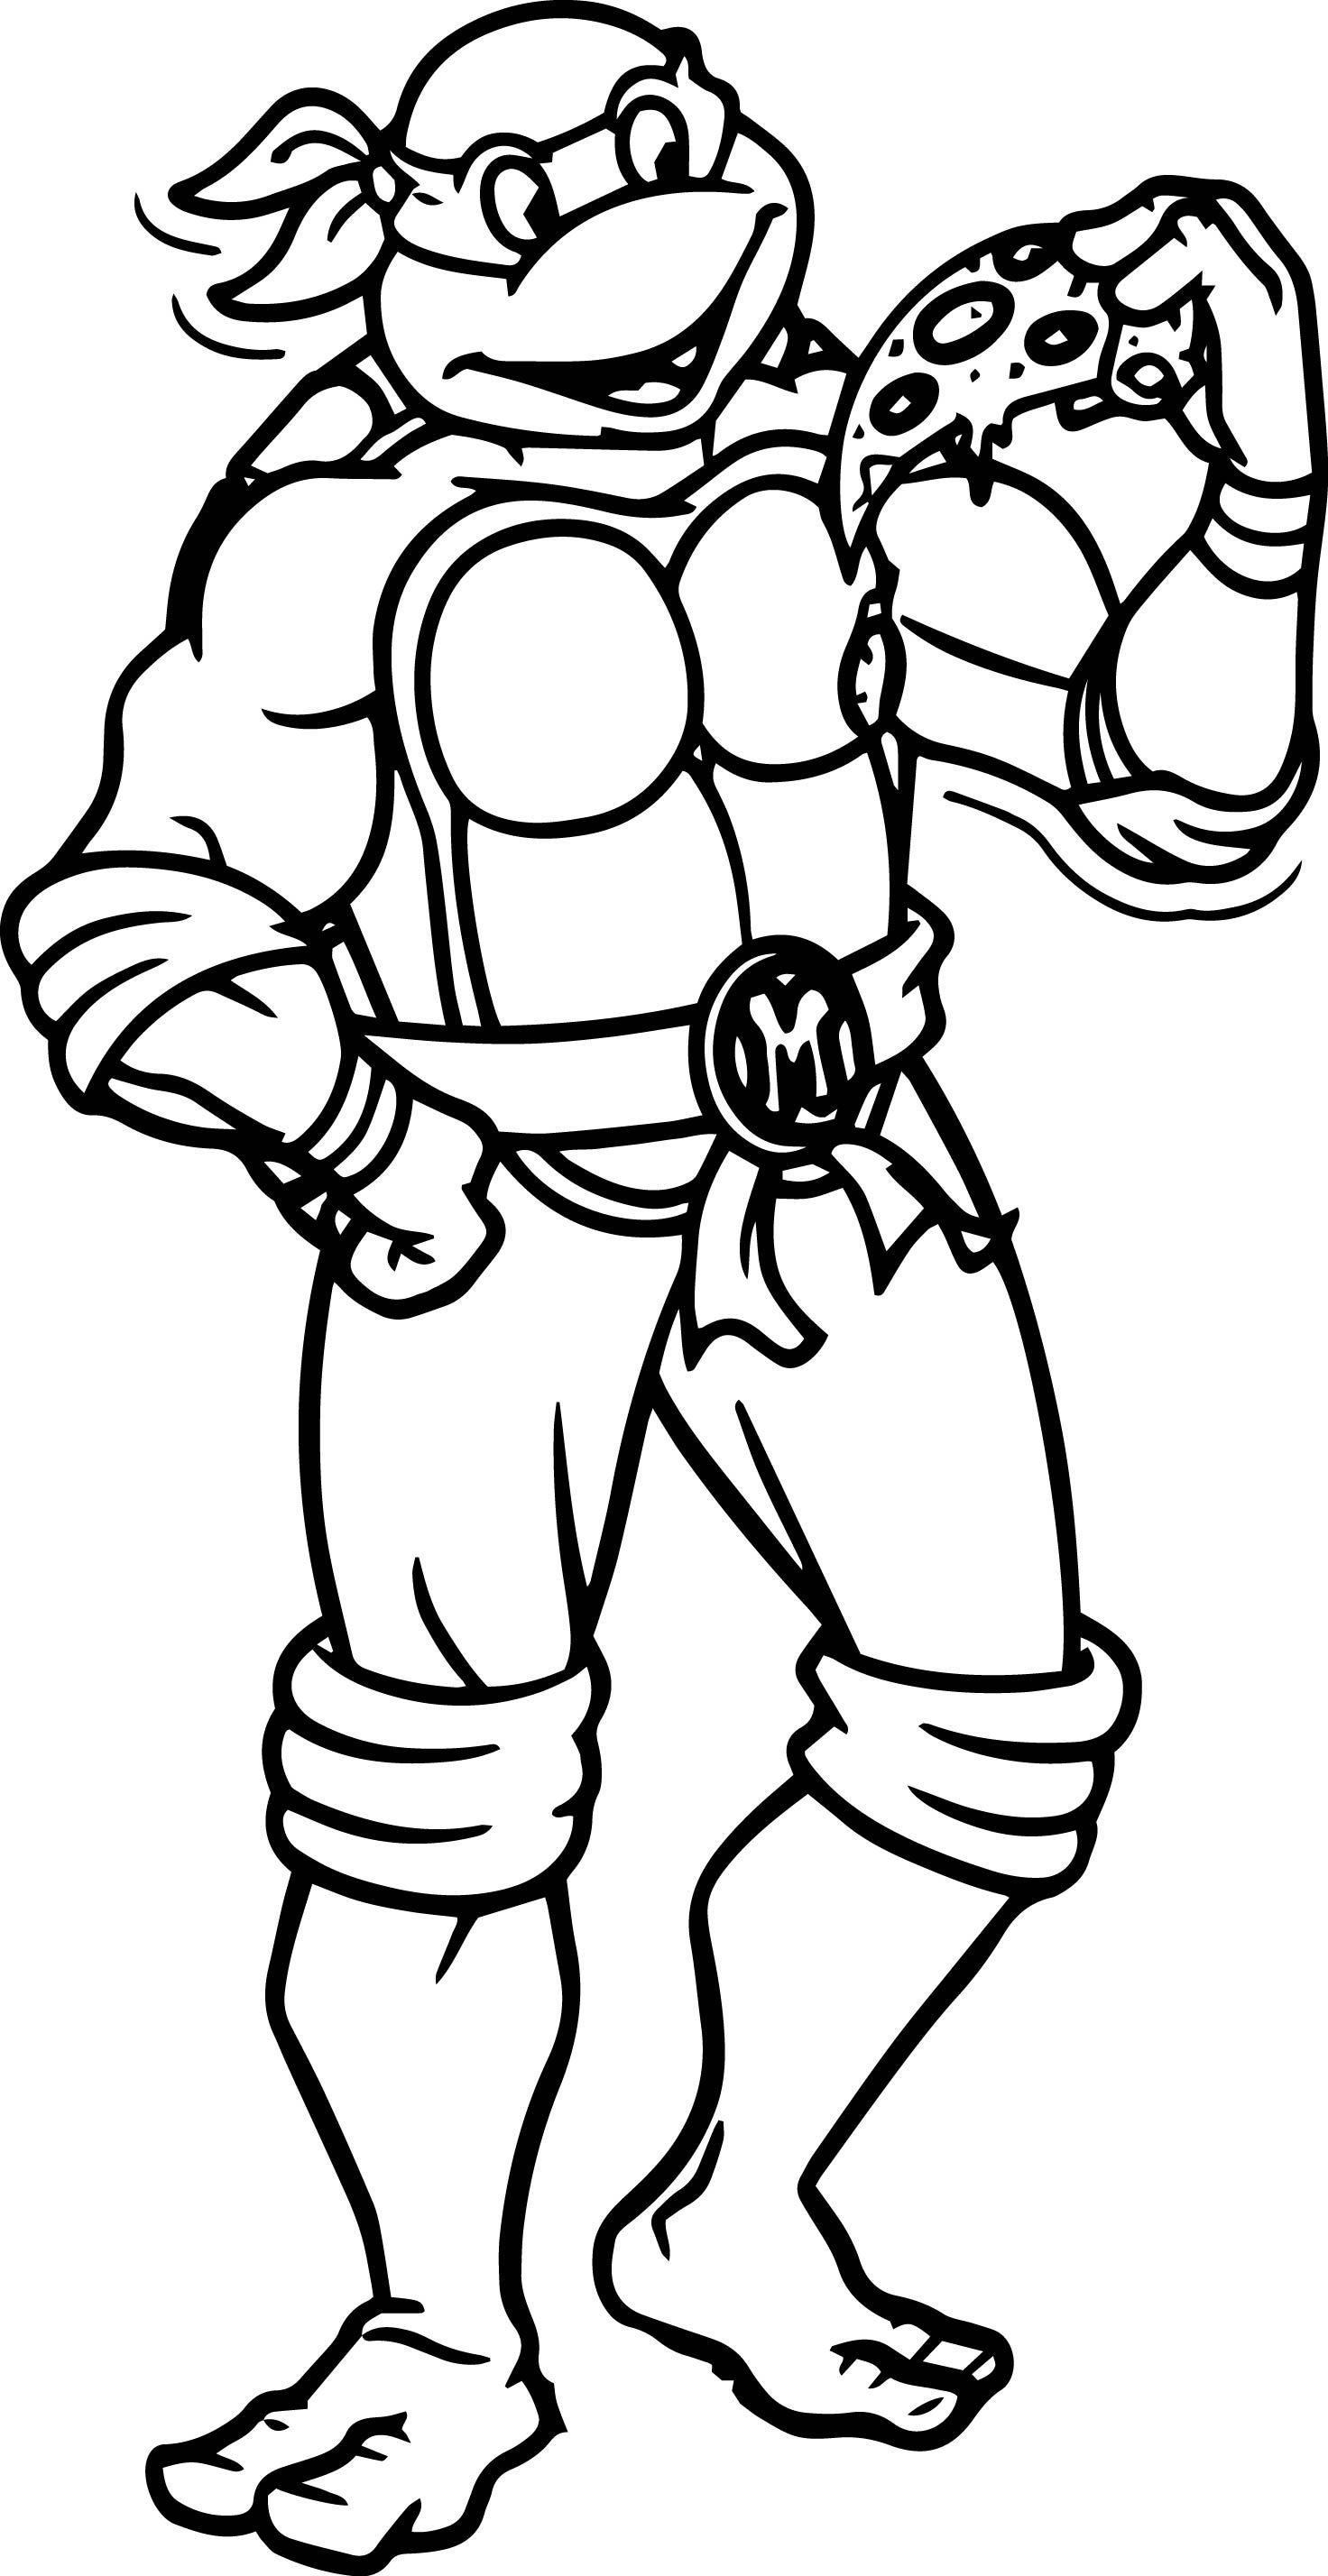 Ninja Turtle Cartoon Coloring Pages Turtle coloring